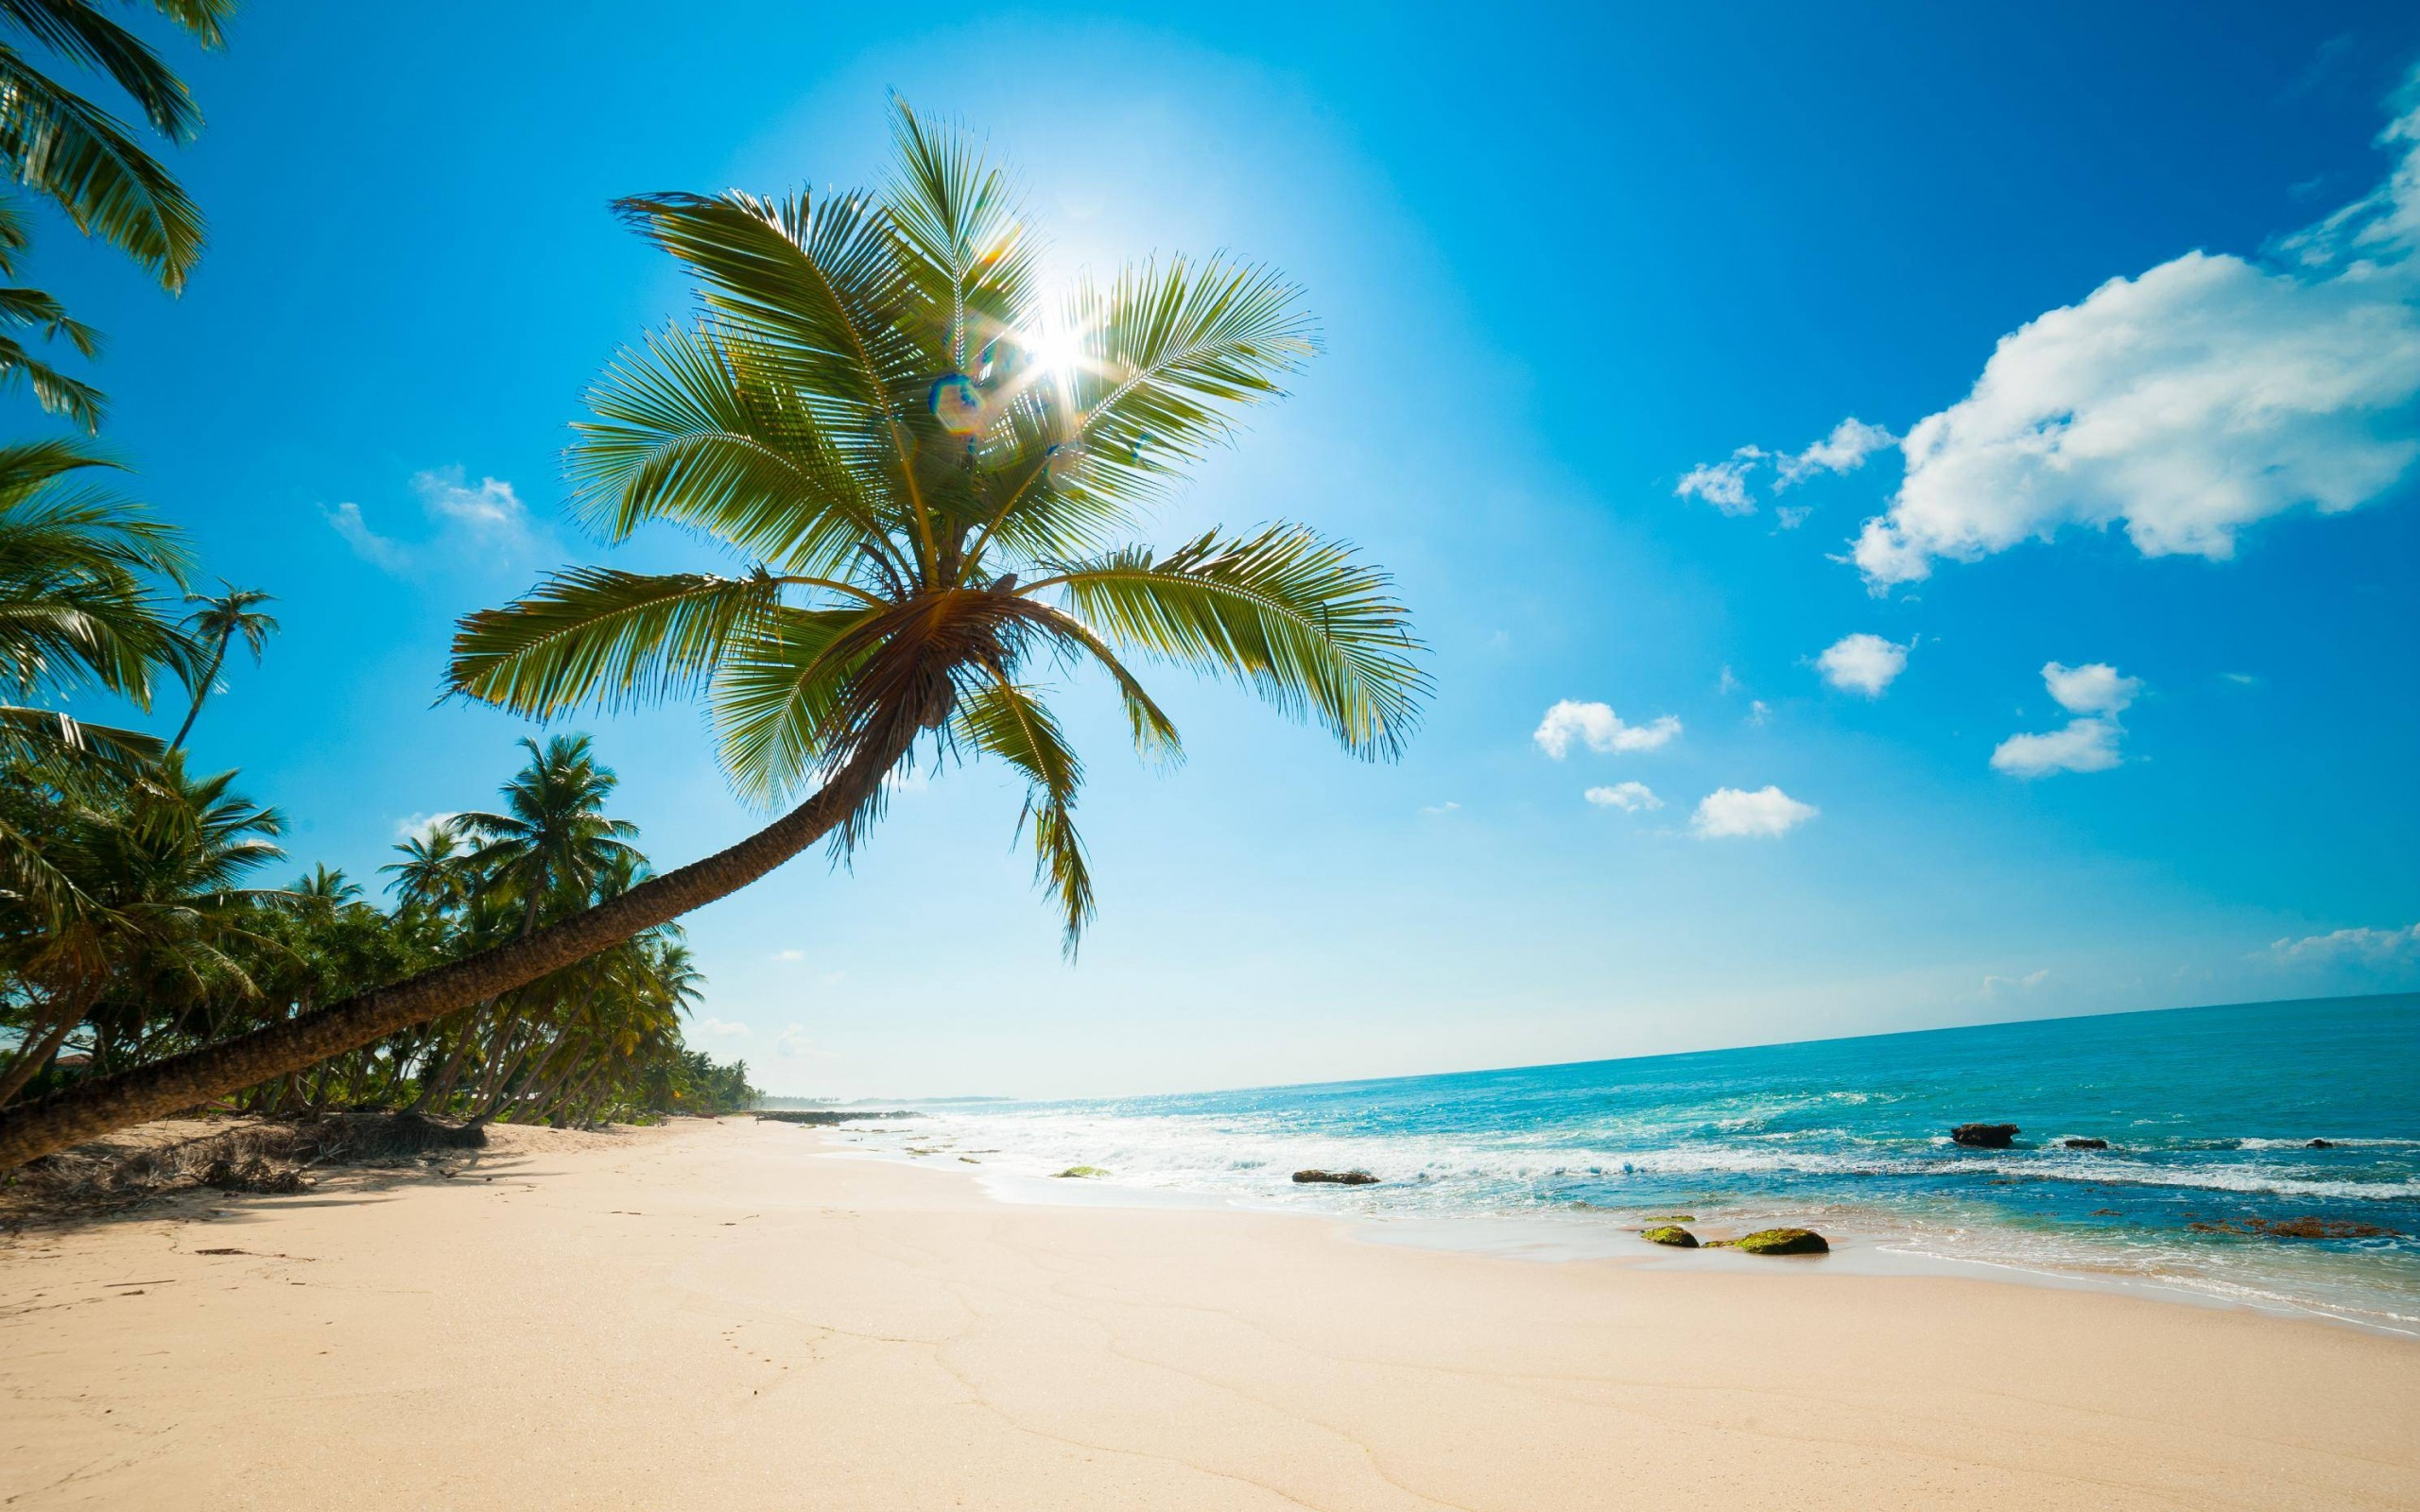 Download Beautiful Sunny Beach HD wallpaper for 2560 x 2560x1600